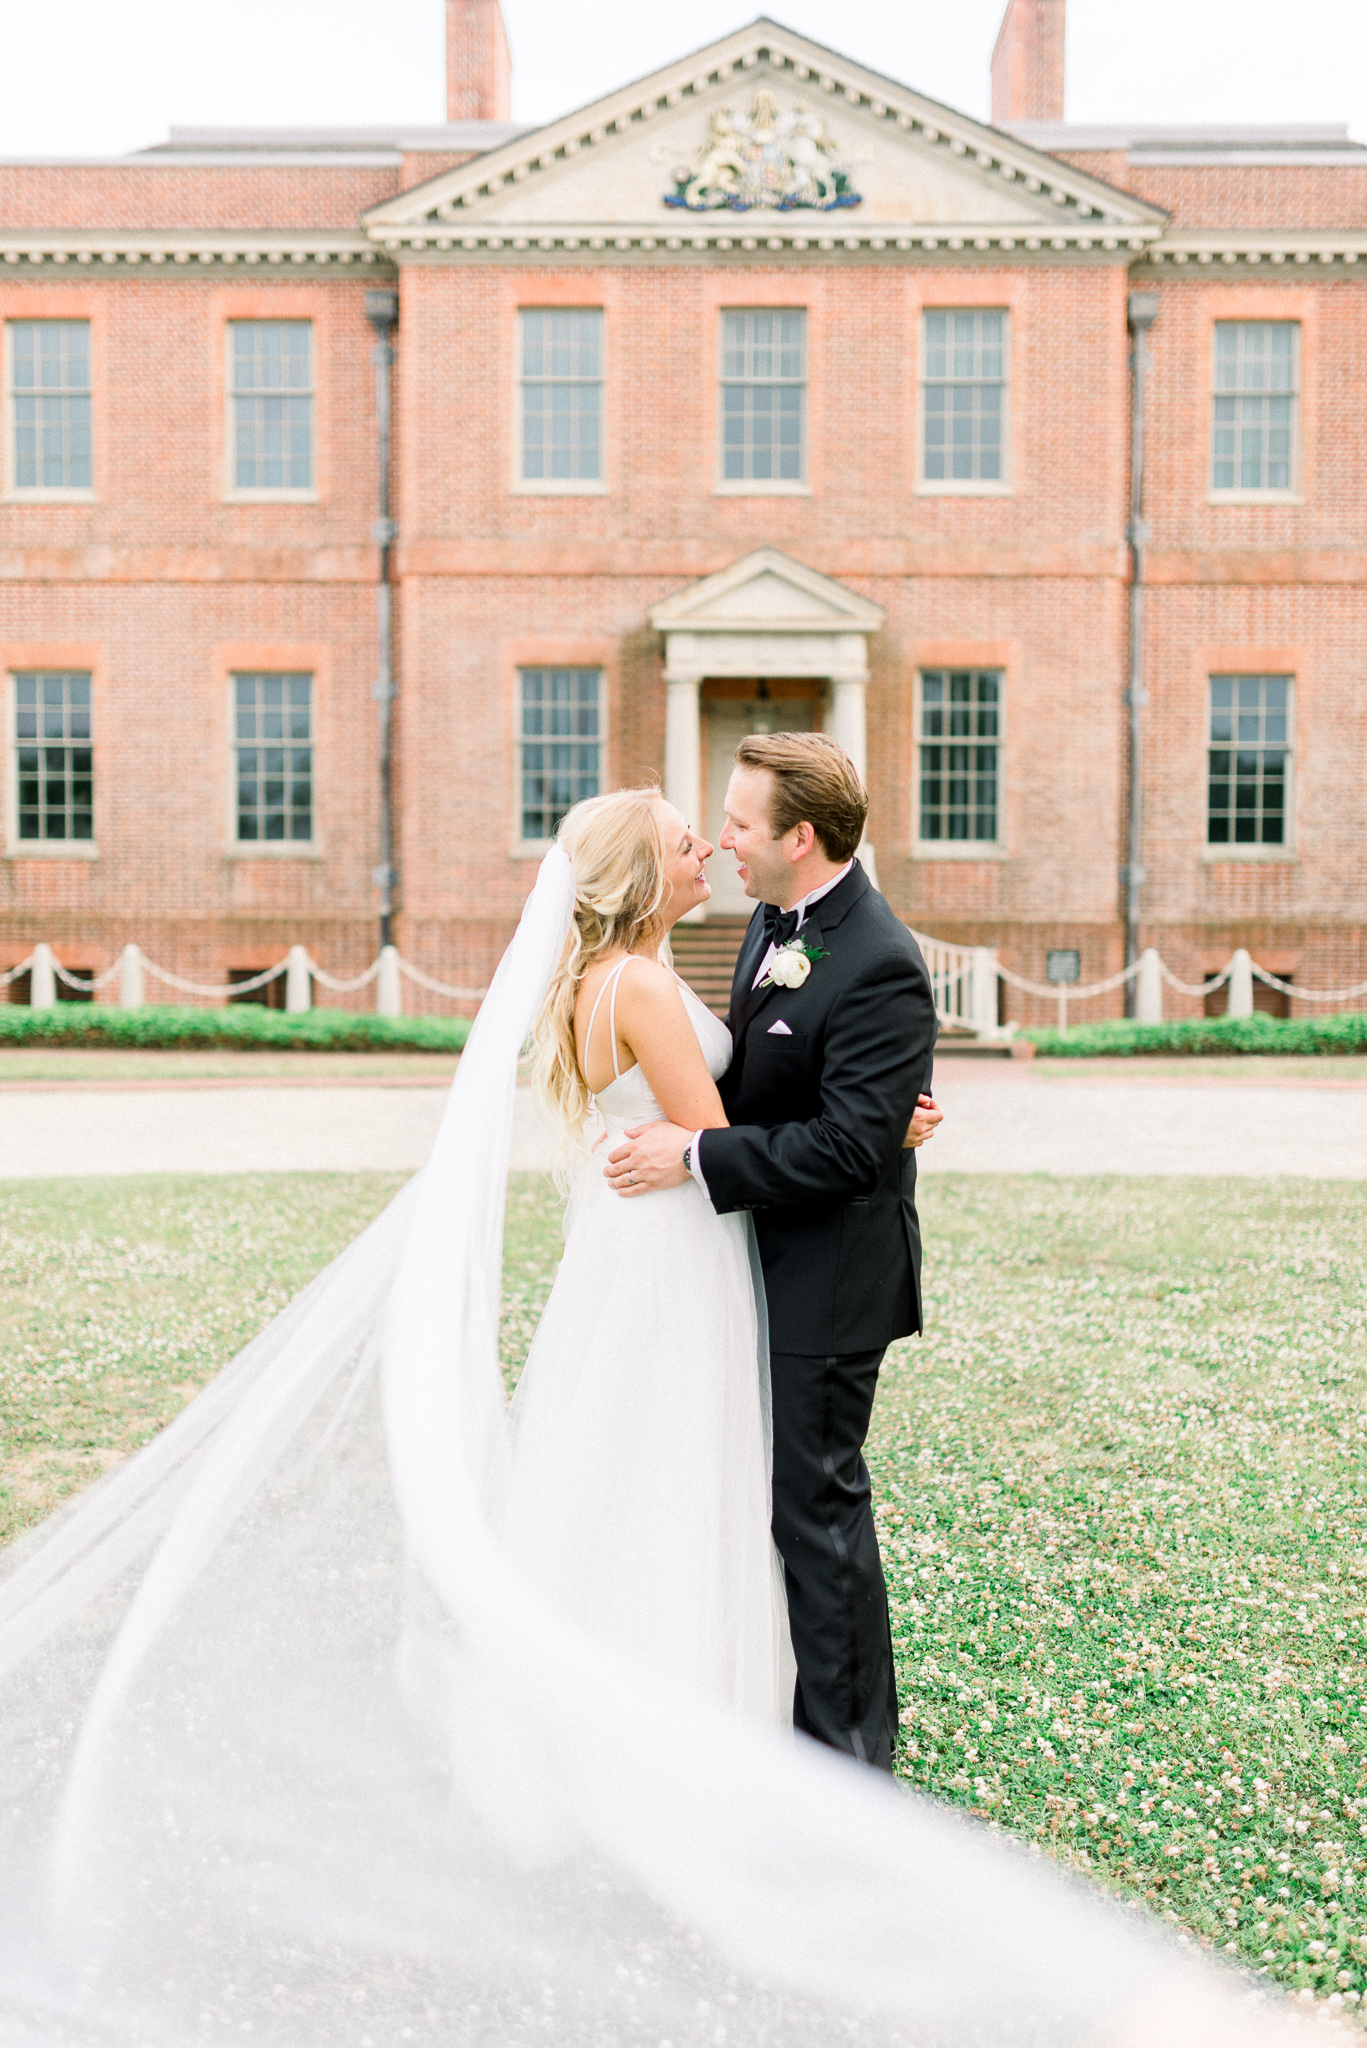 KEEPSAKE$3,600 - Unless you are planning to have a lengthy ceremony or are wanting full coverage of hair and makeup, then this package should be perfect for your needs. It covers everything important while leaving a little extra breathing room.8 Hours of Wedding Day Coverage2 PhotographersOptional Complimentary Honeymoon Session (depending on location and travel dates)Preview Blog PostOnline GalleryHigh Resolution Download PINPrint Options & Print ReleaseDiscounted Anniversary Session